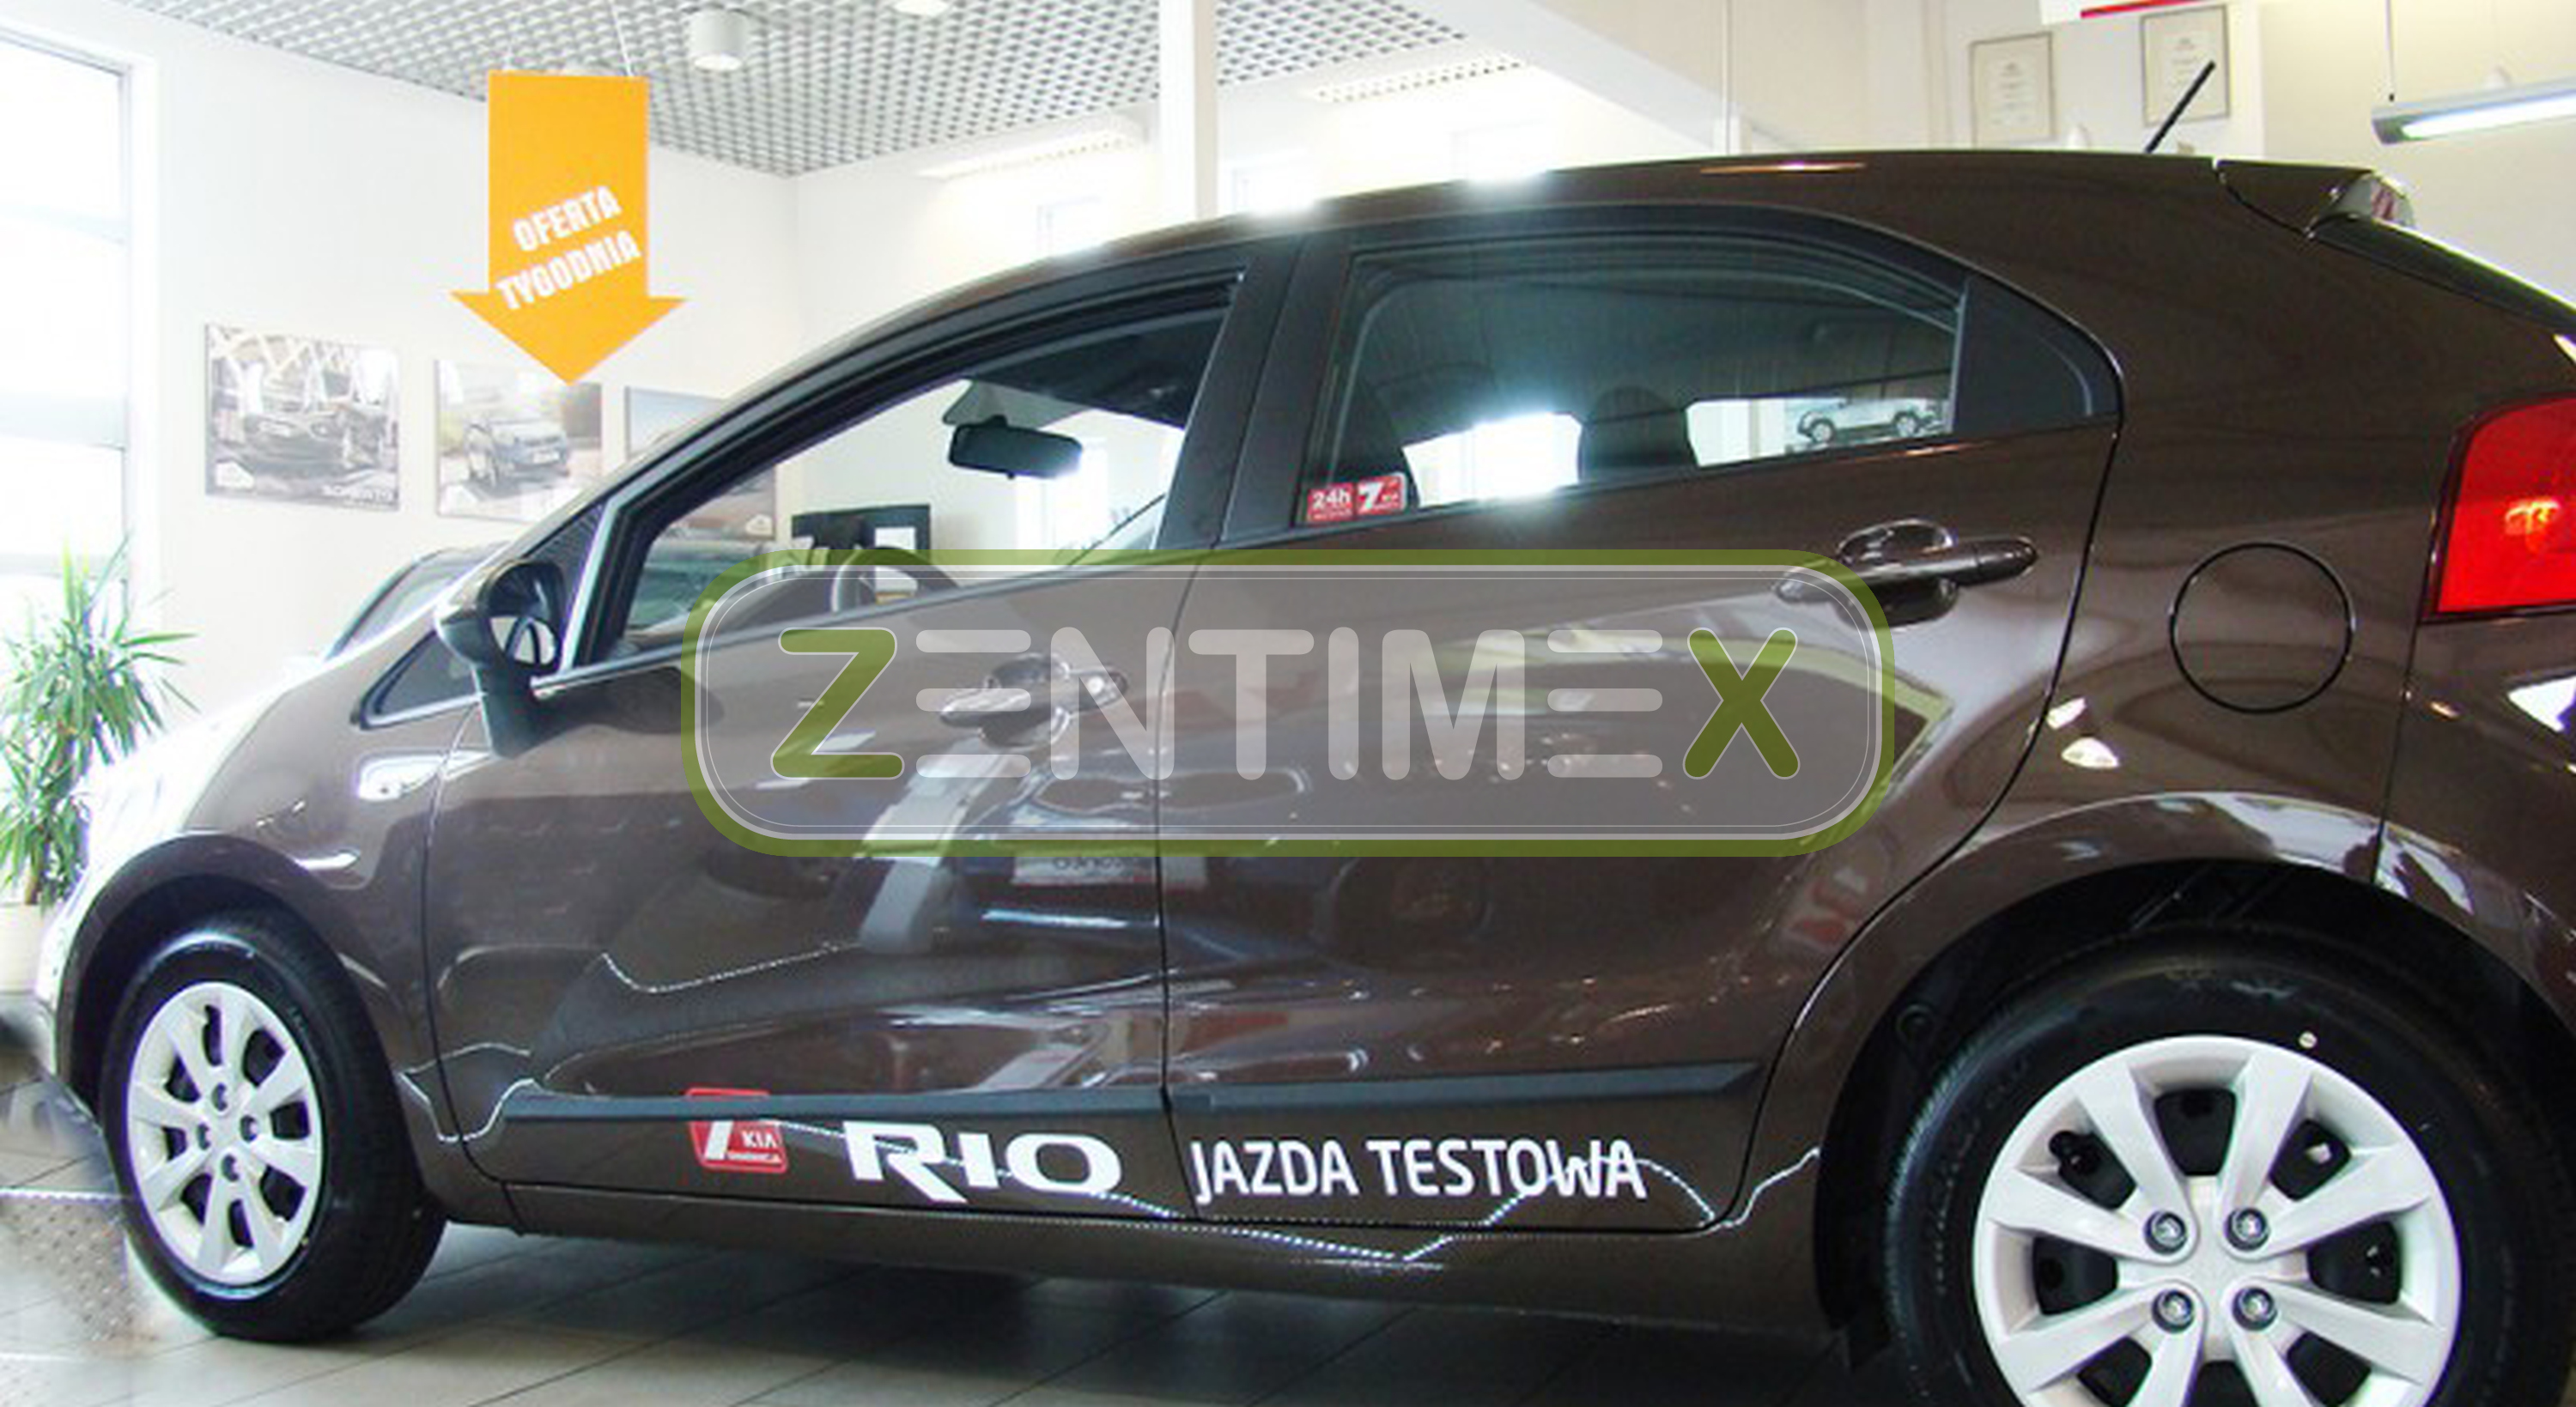 schutzleisten f r kia rio 3 ub 2011 schr gheck hatchback. Black Bedroom Furniture Sets. Home Design Ideas